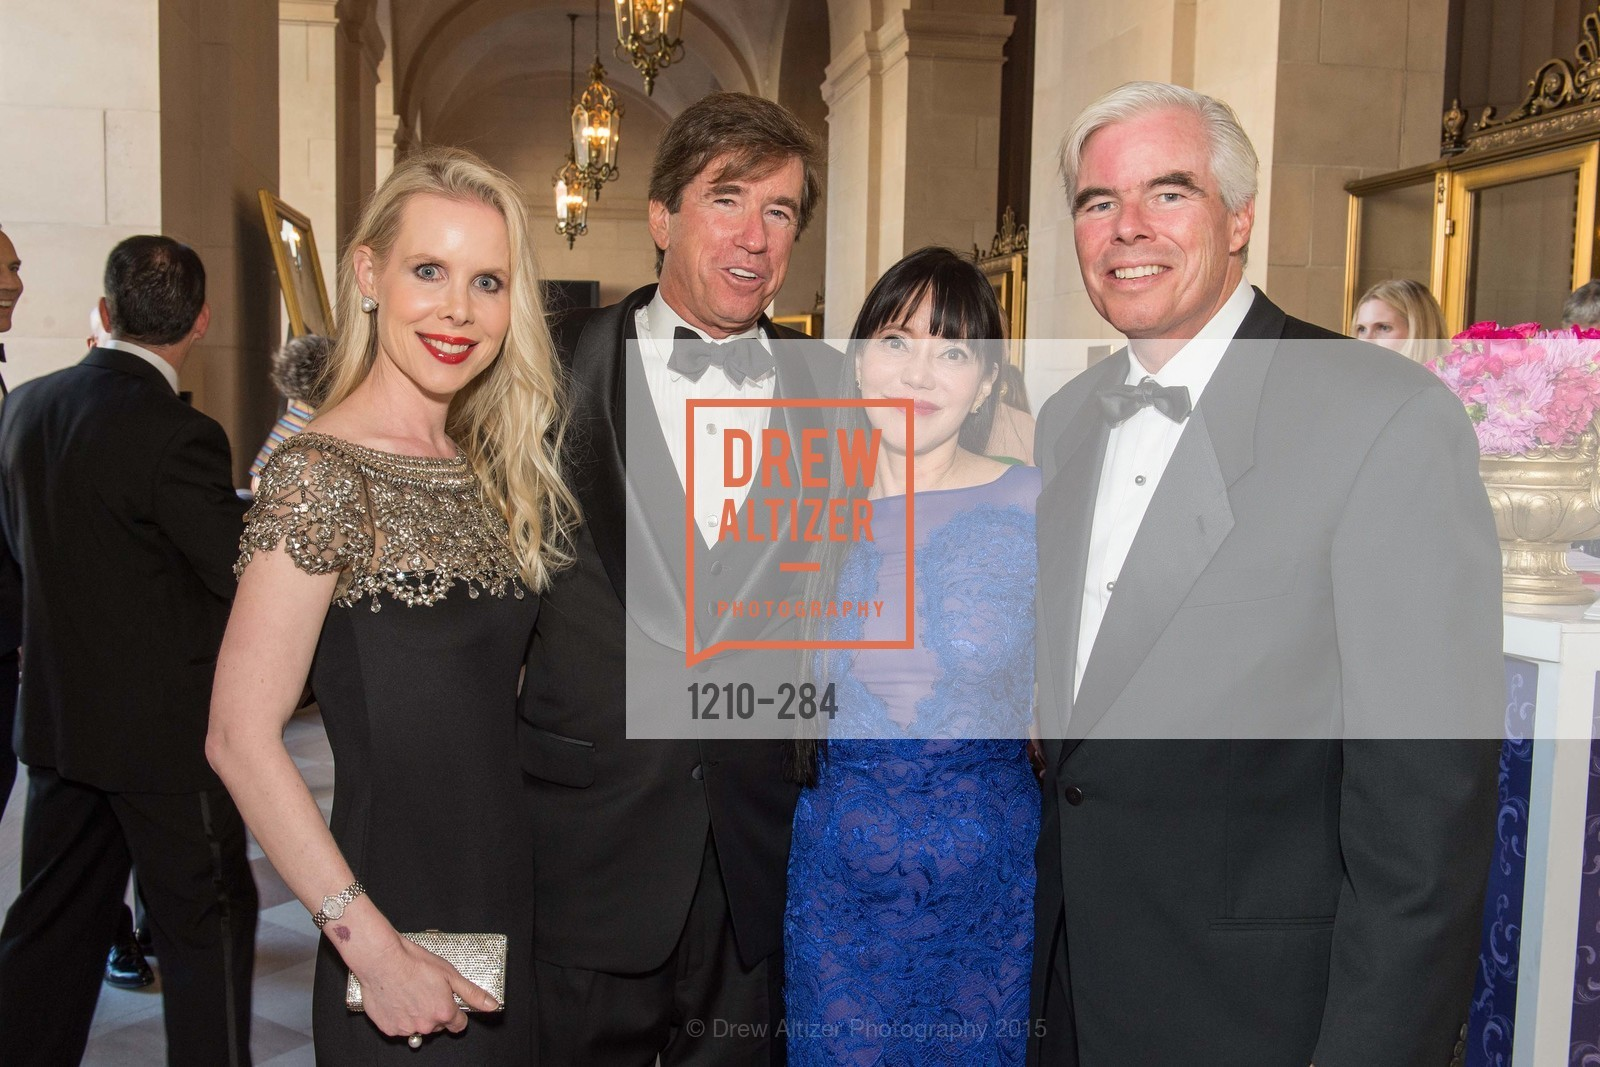 Shannon Cronan, Brian Sexton, France Szeto, Dan Cronan, Opera Ball 2015: Moonlight & Music, War Memorial Opera House. 301 Van Ness Ave, September 11th, 2015,Drew Altizer, Drew Altizer Photography, full-service agency, private events, San Francisco photographer, photographer california